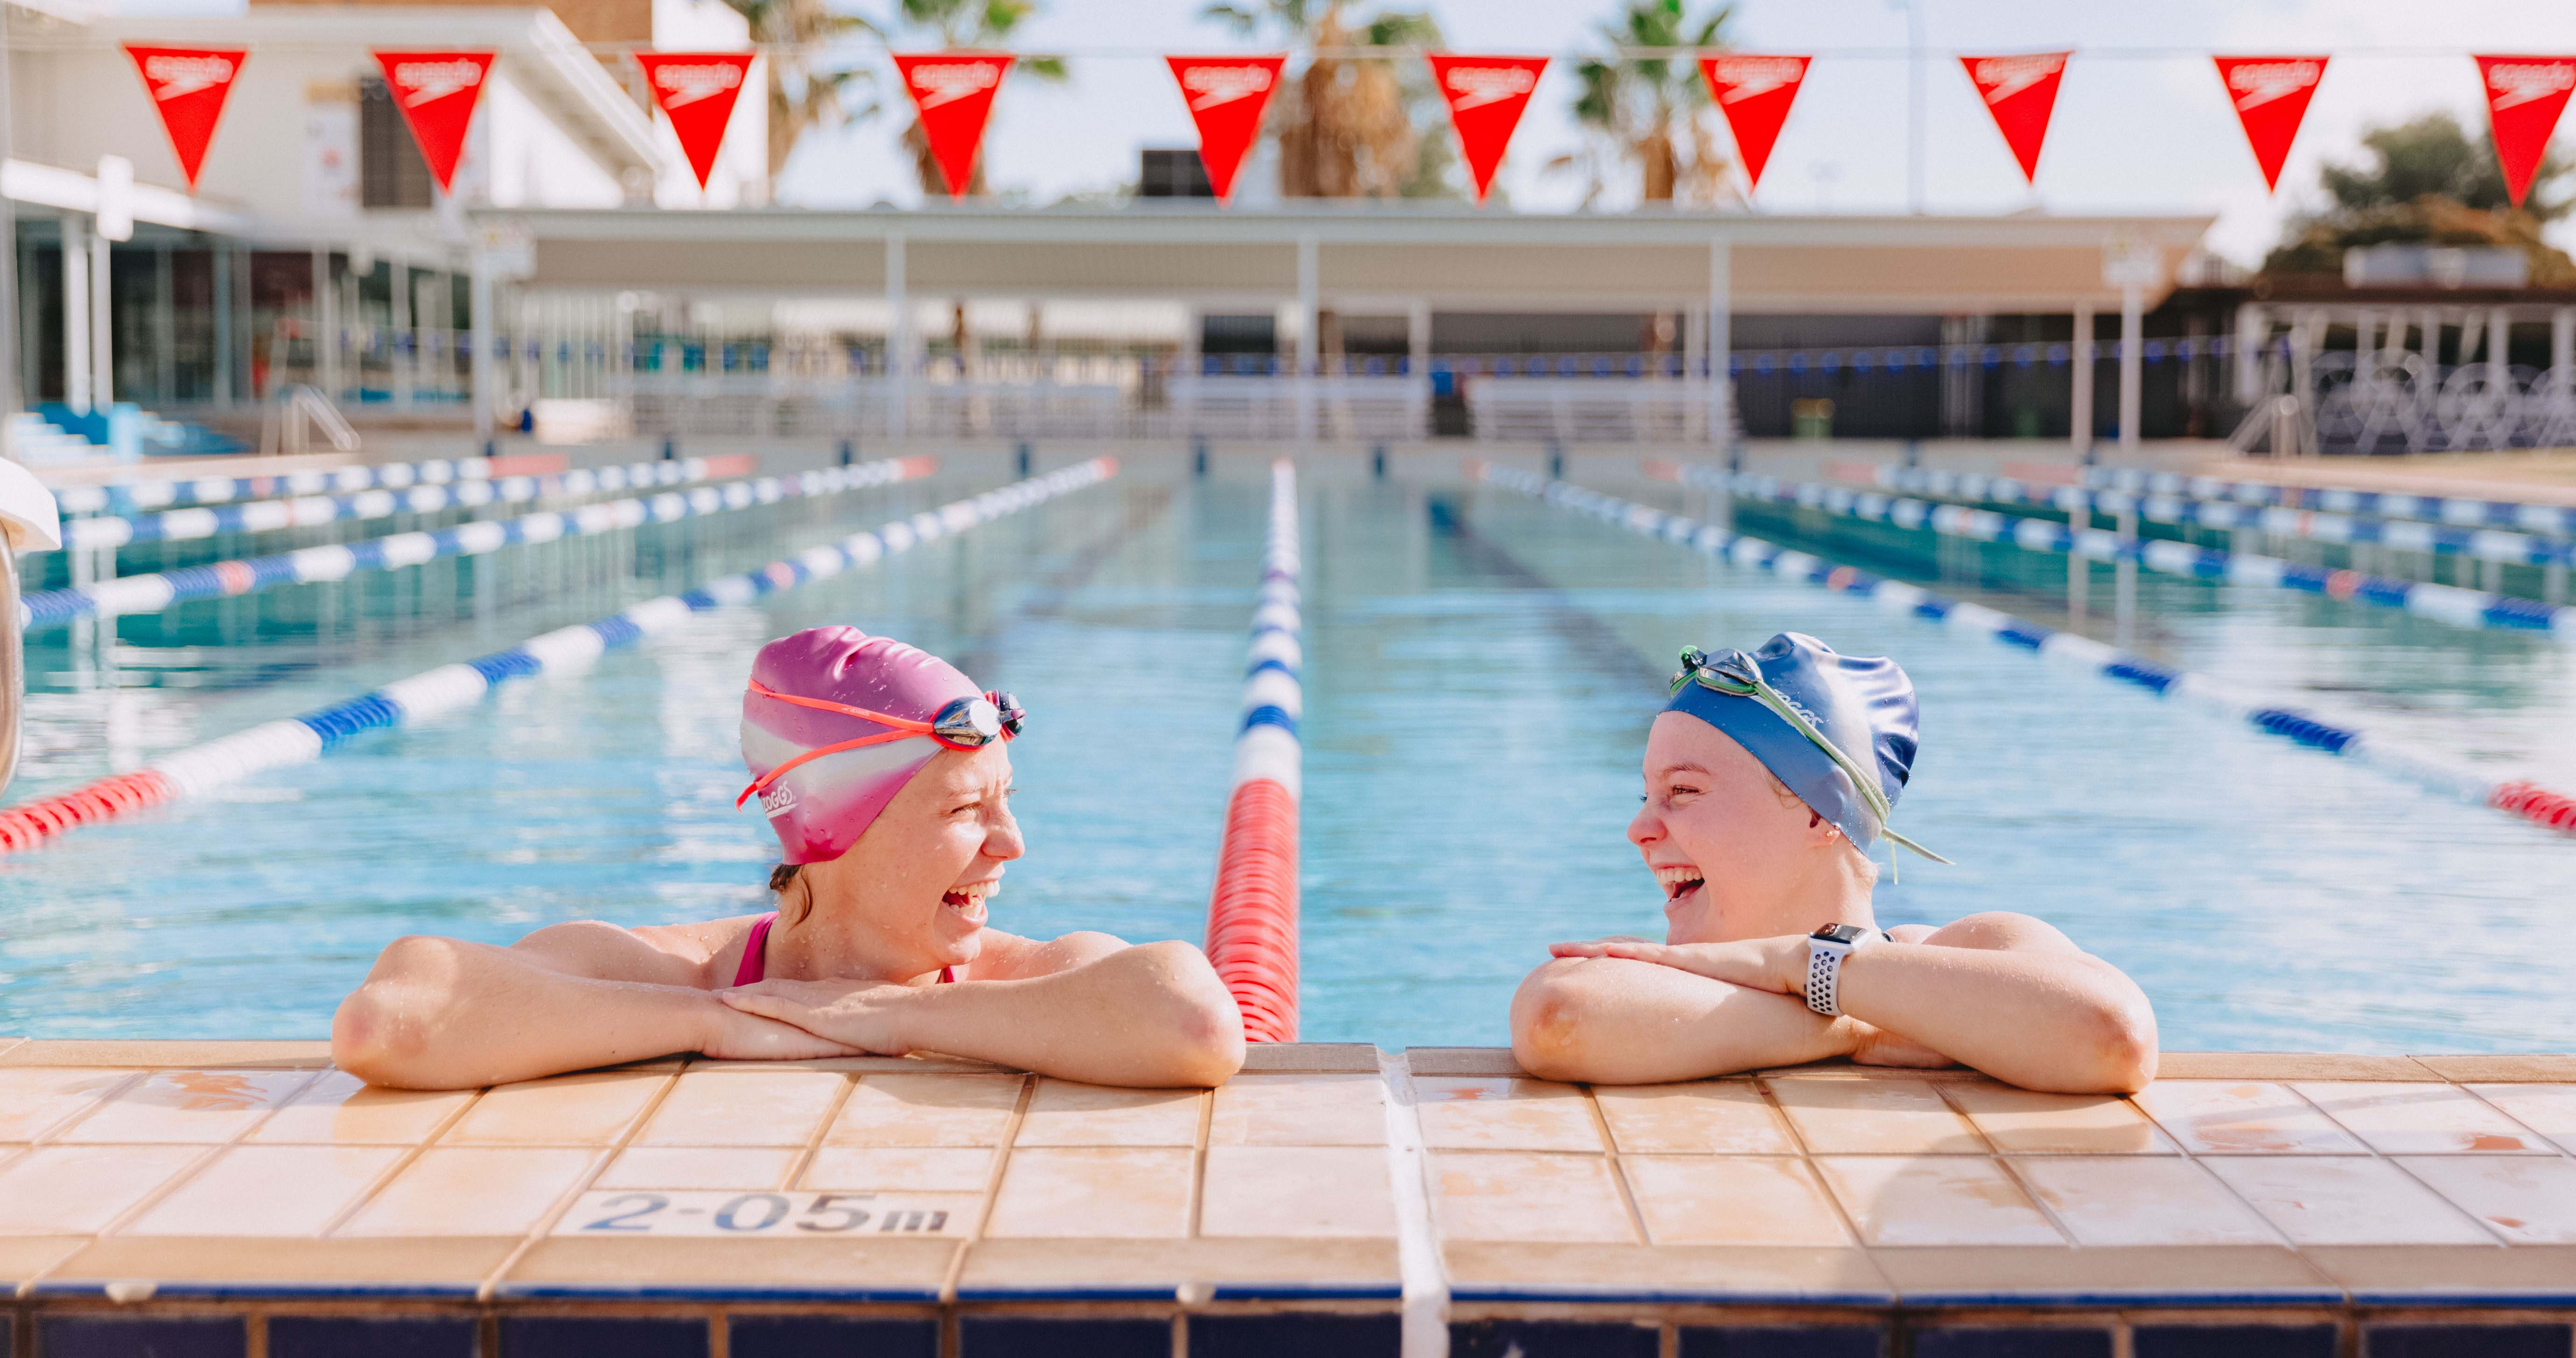 Two females leaning on the edge of the pool, laughing at each other.